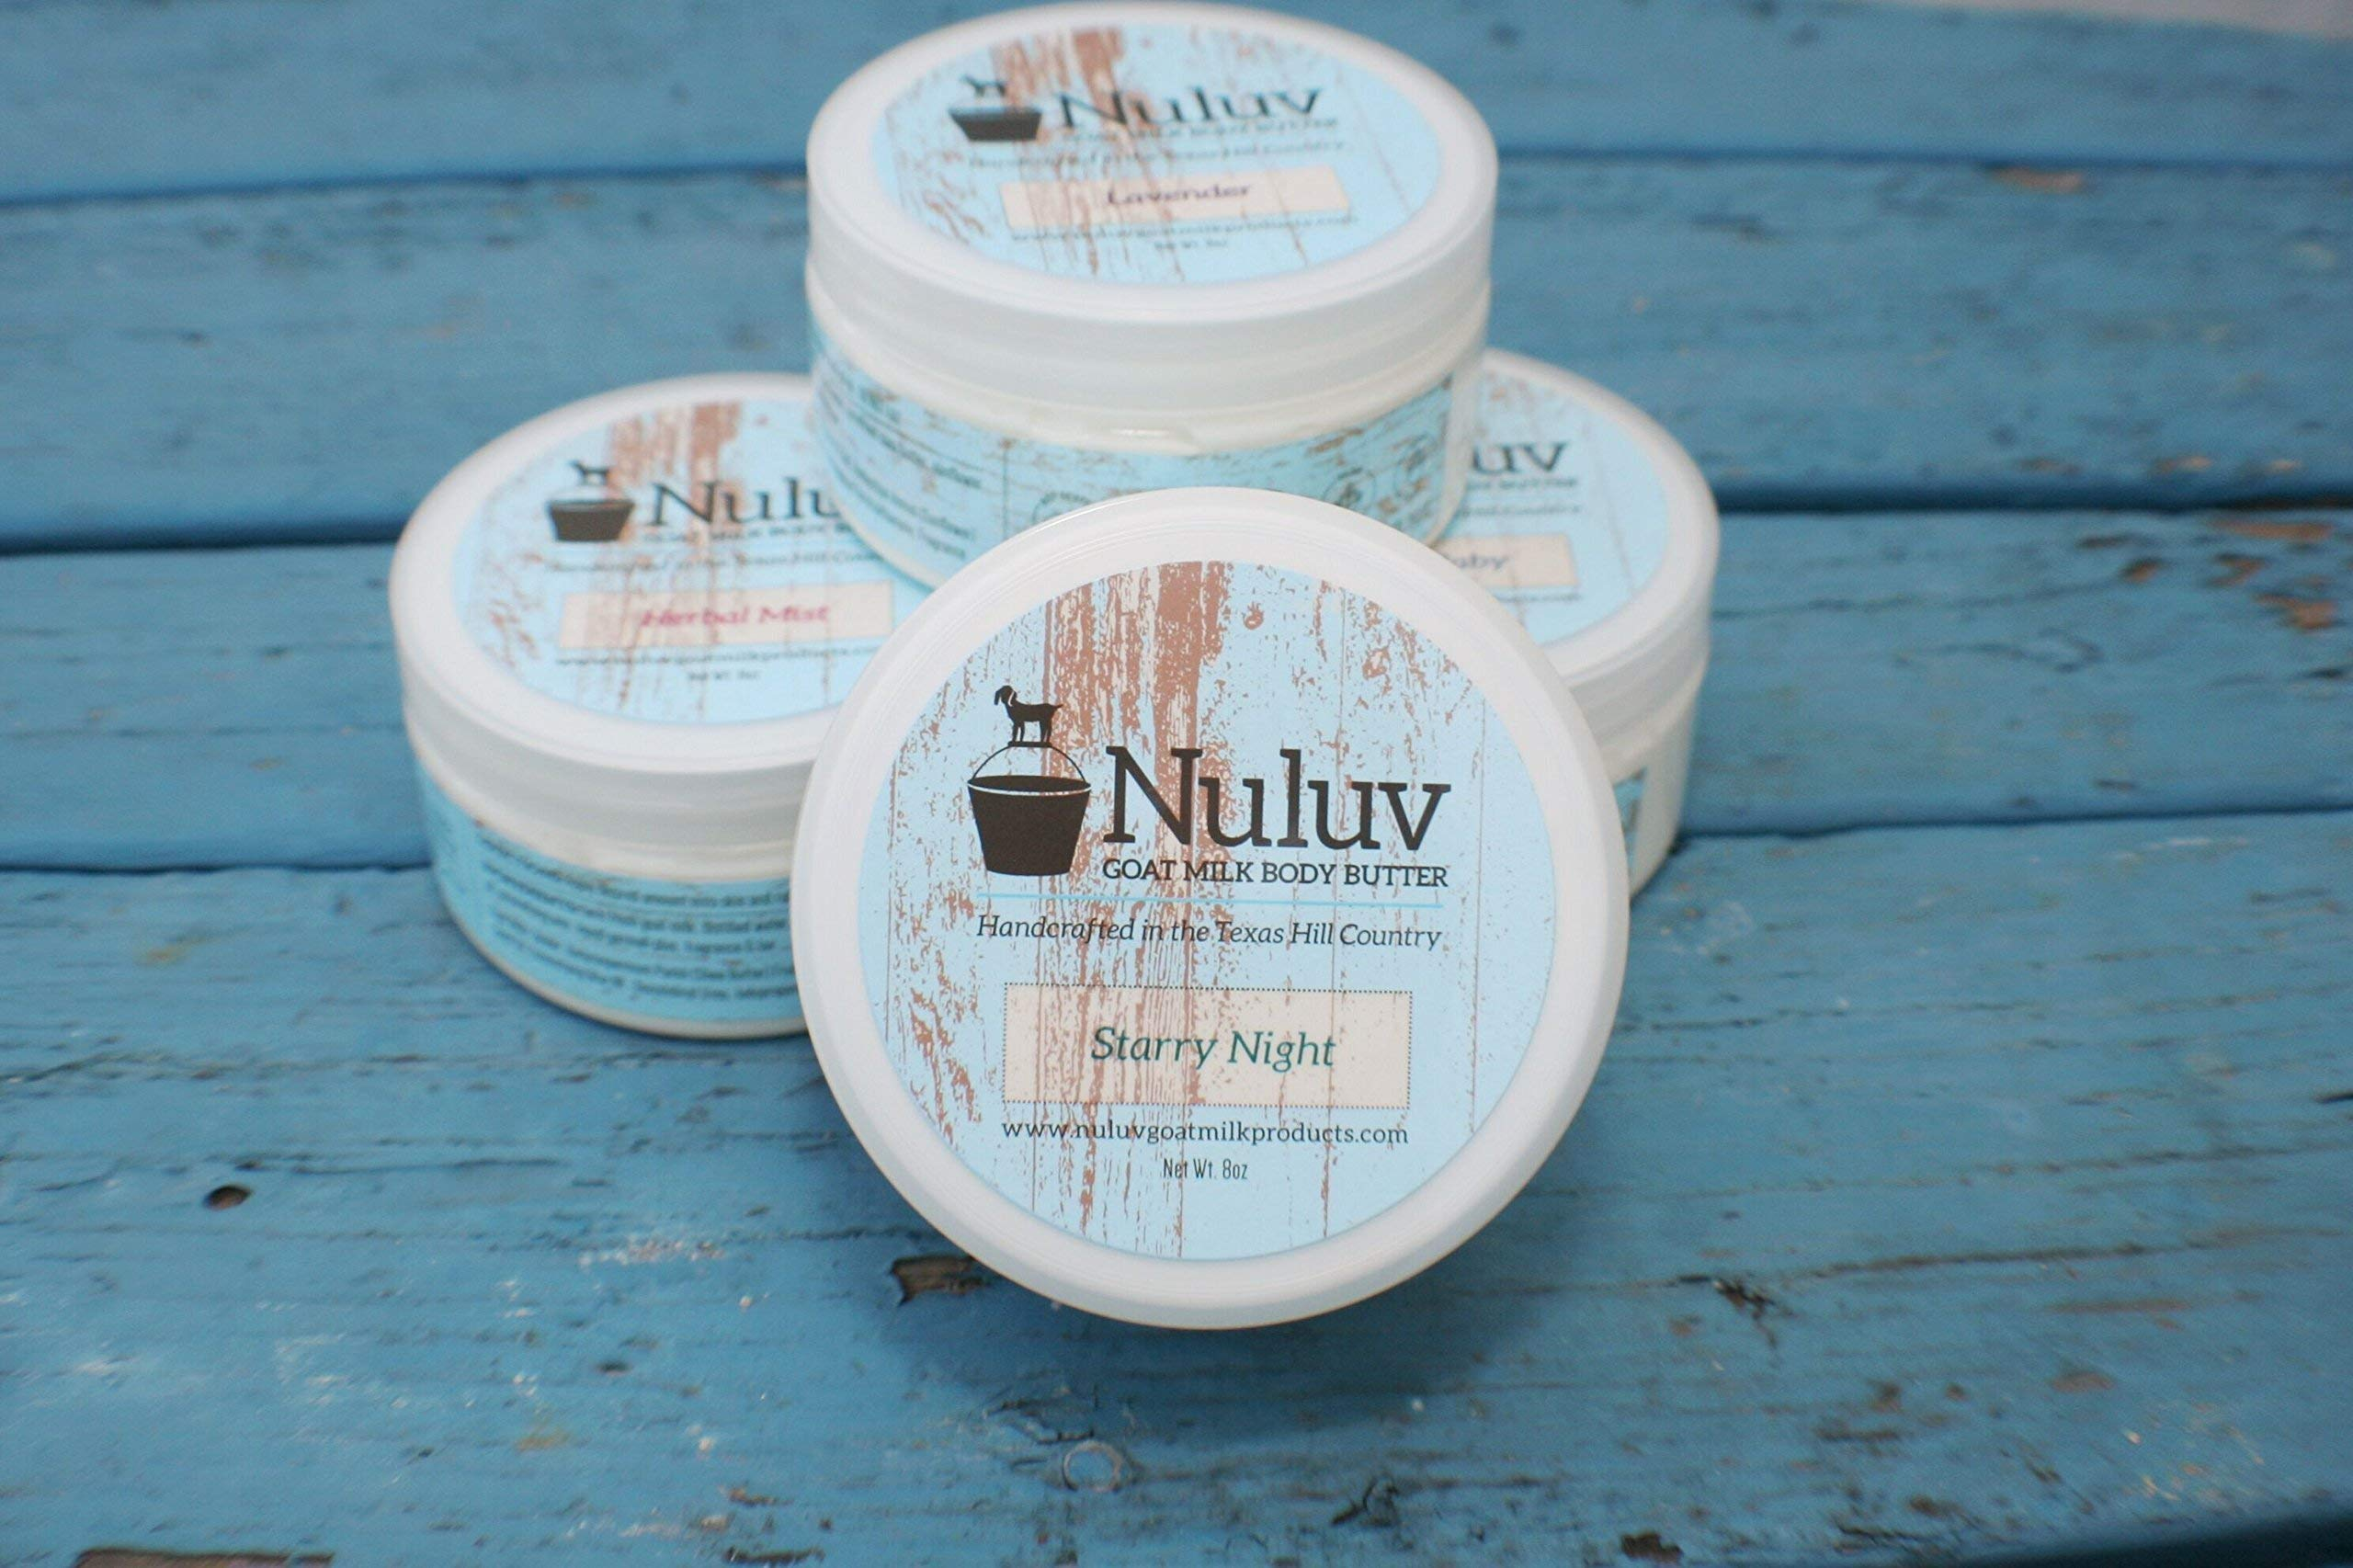 Set of 2 Nuluv Goat Milk Products 8oz. Jars Body Butter